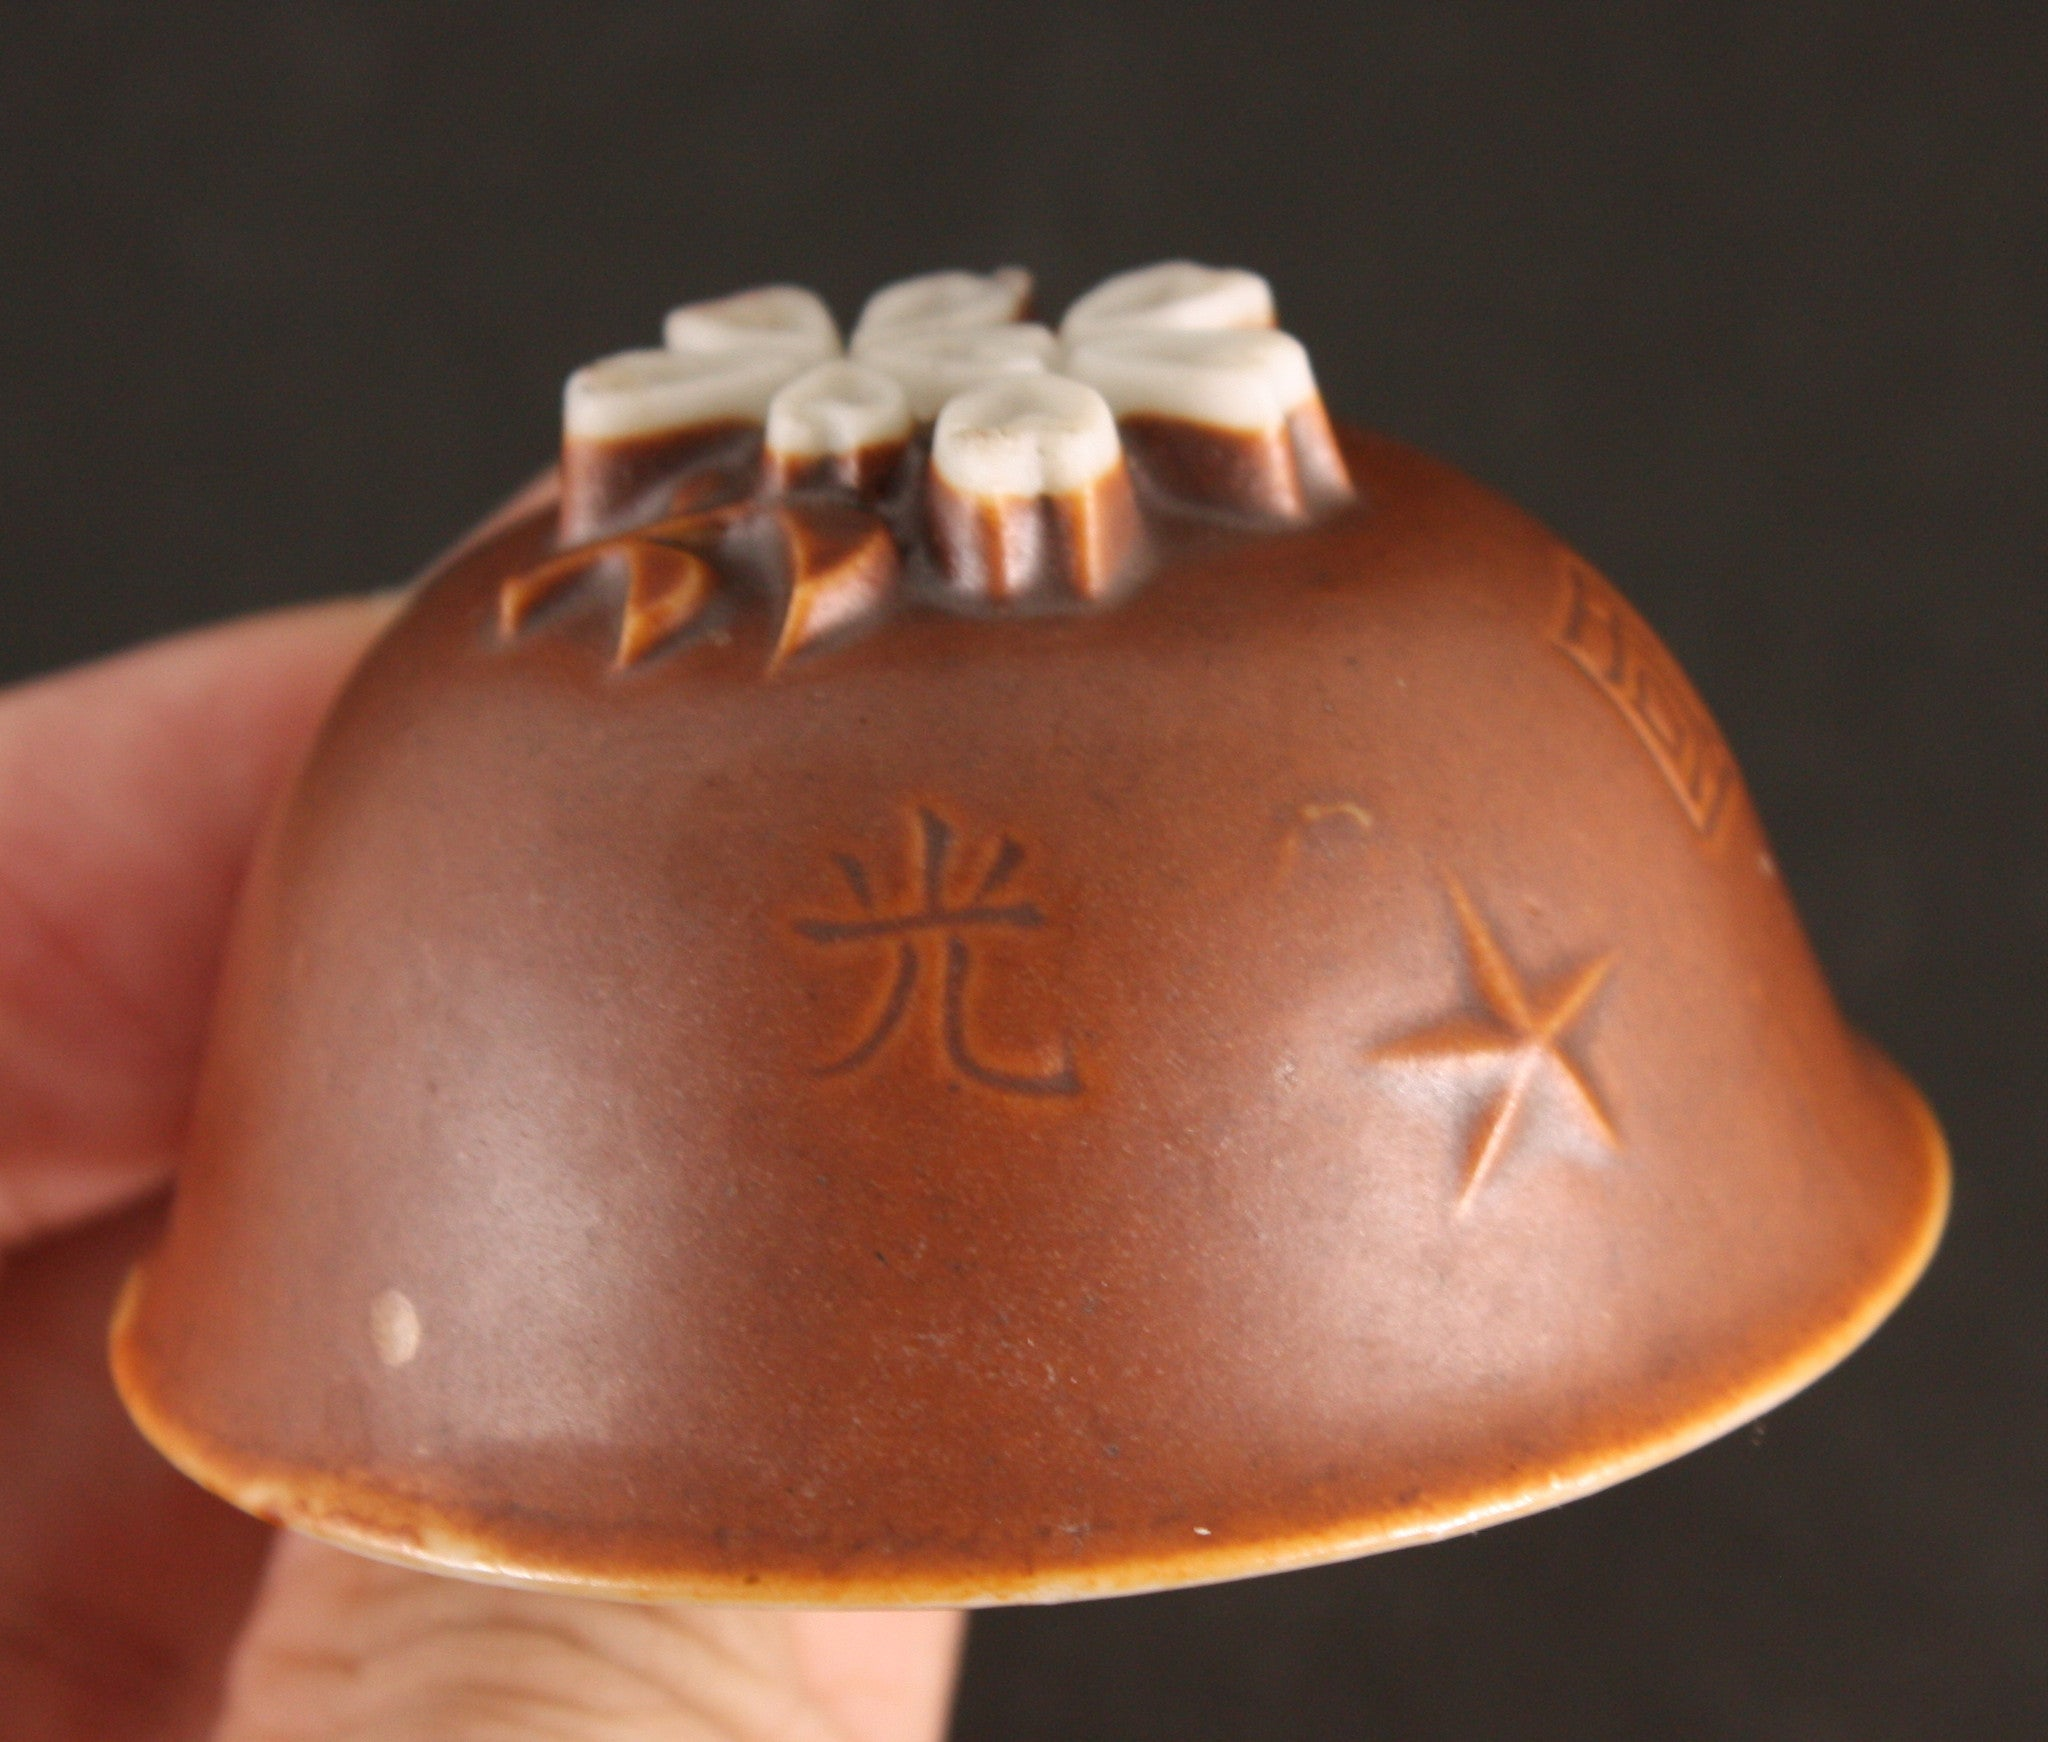 Antique Japanese Military Double Cherry Blossom Base Helmet Army Sake Cup